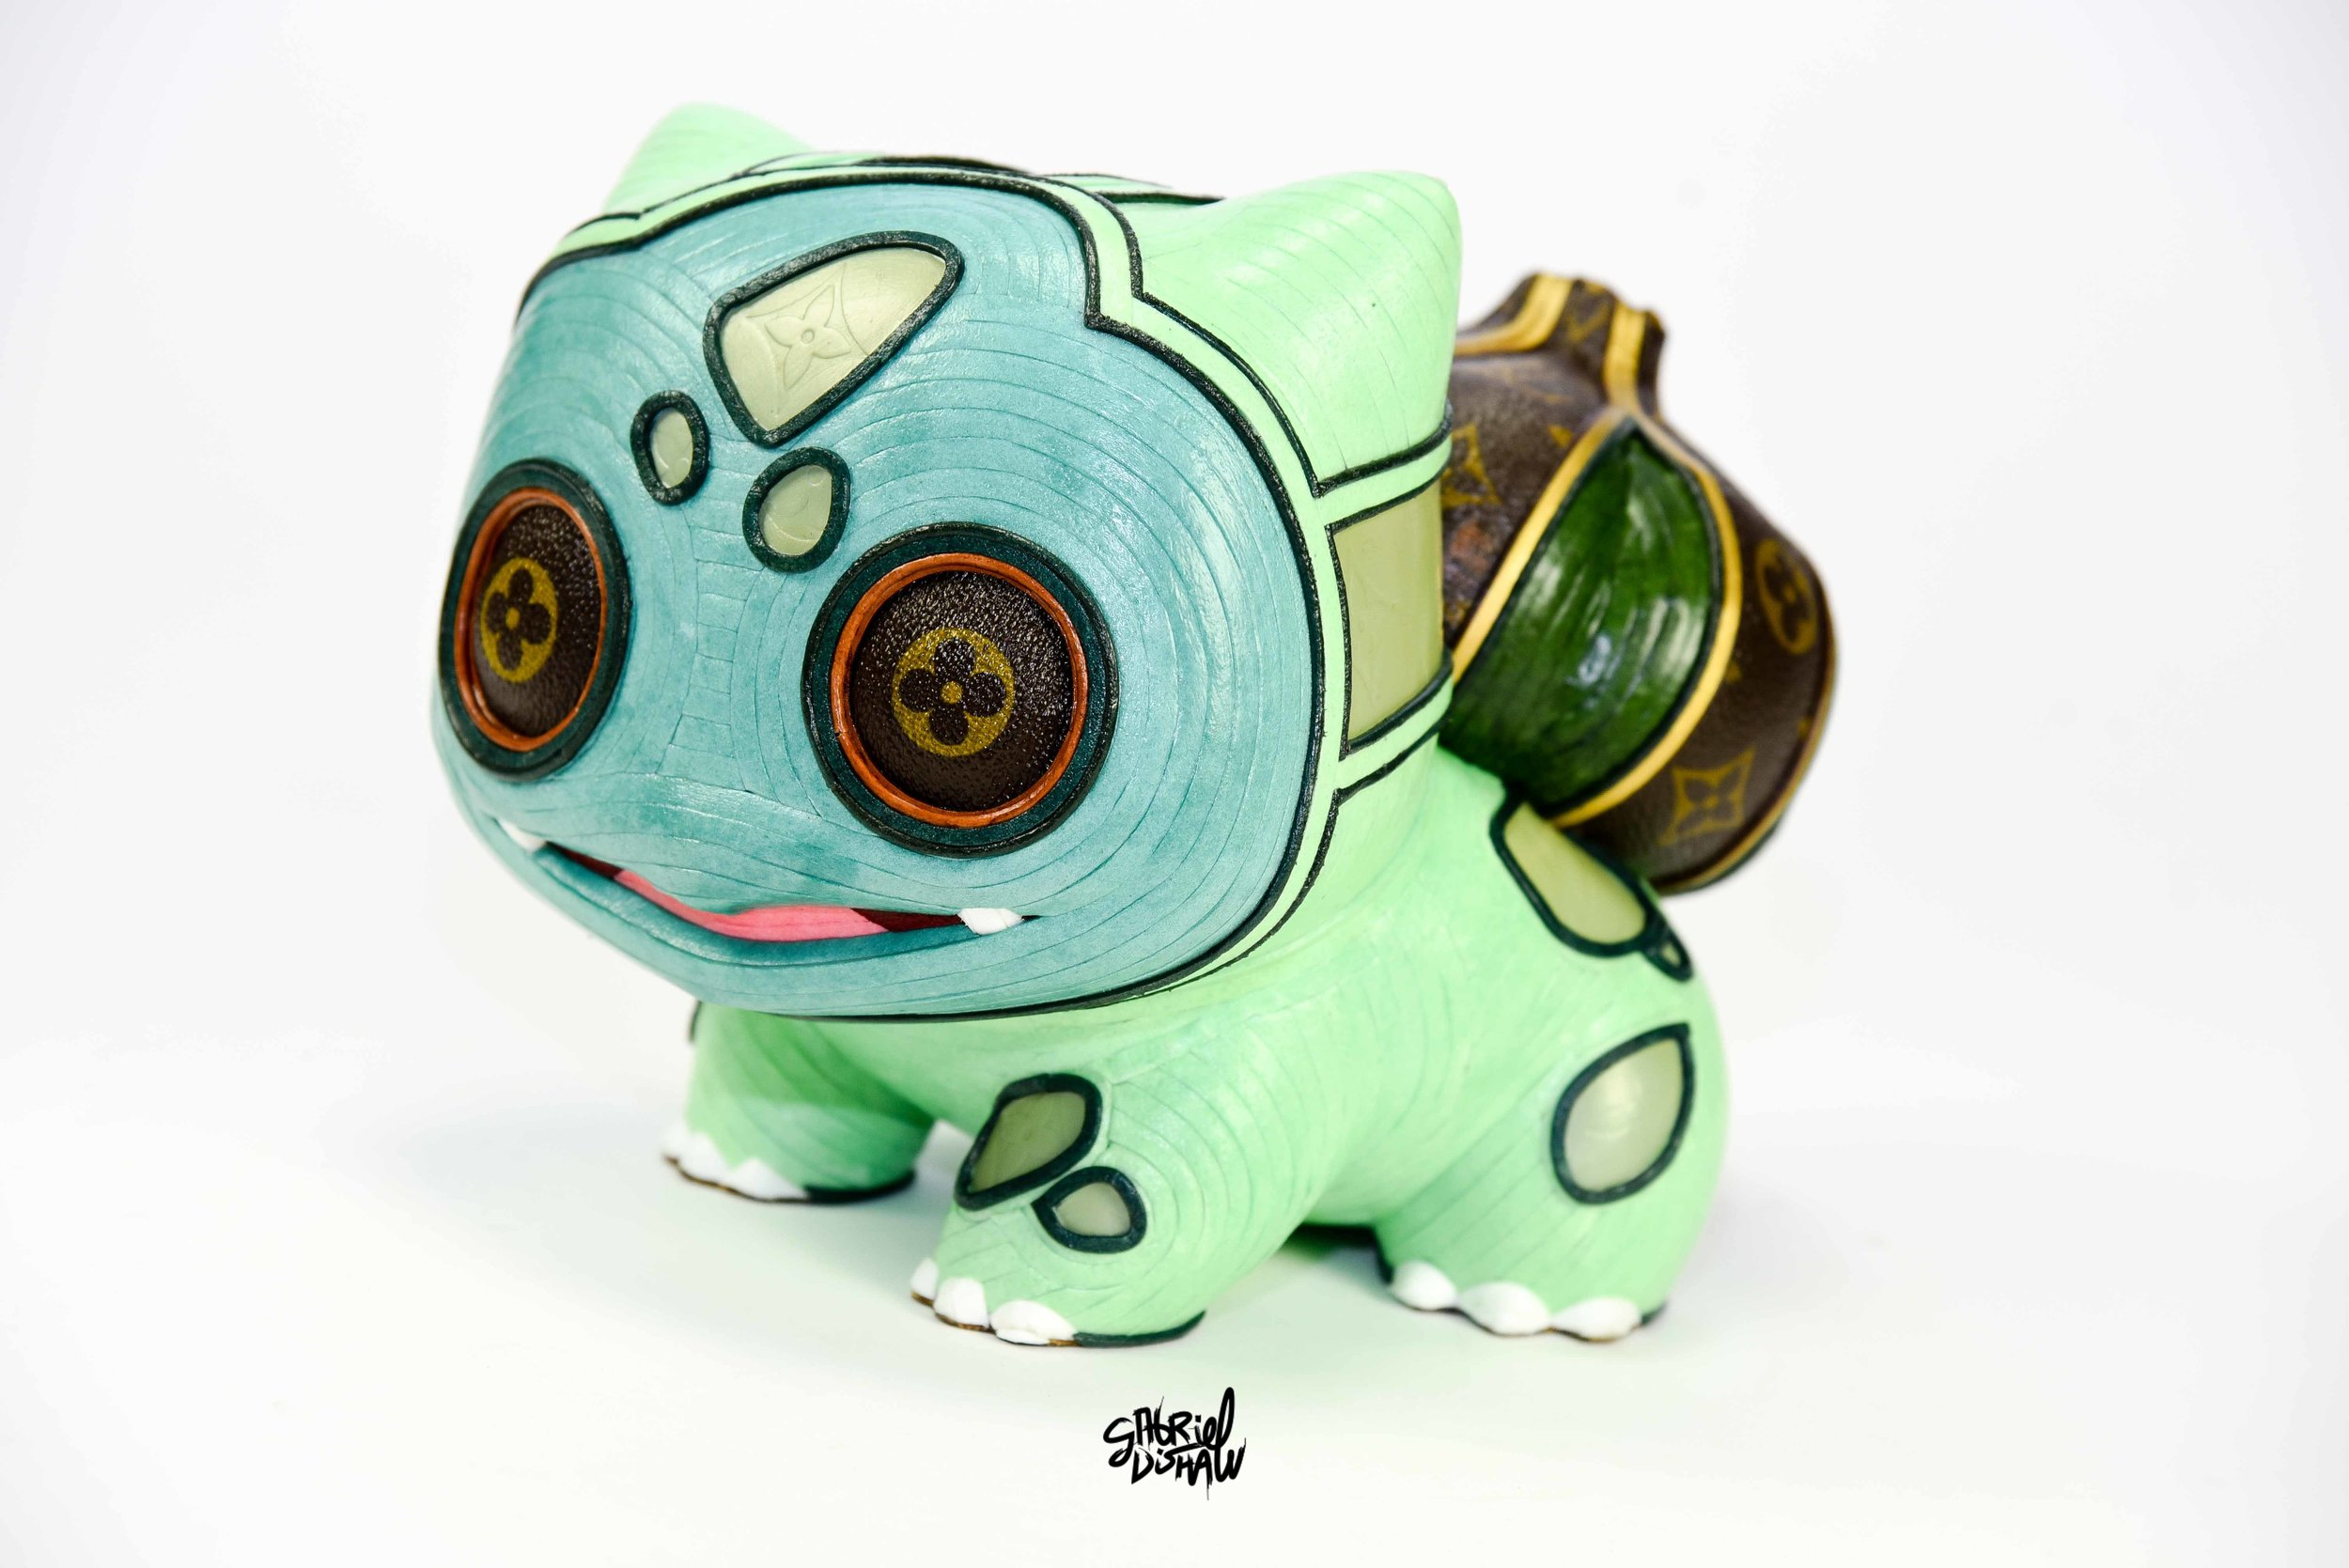 Gabriel Dishaw Bulbasaur LV (14 of 107).jpg